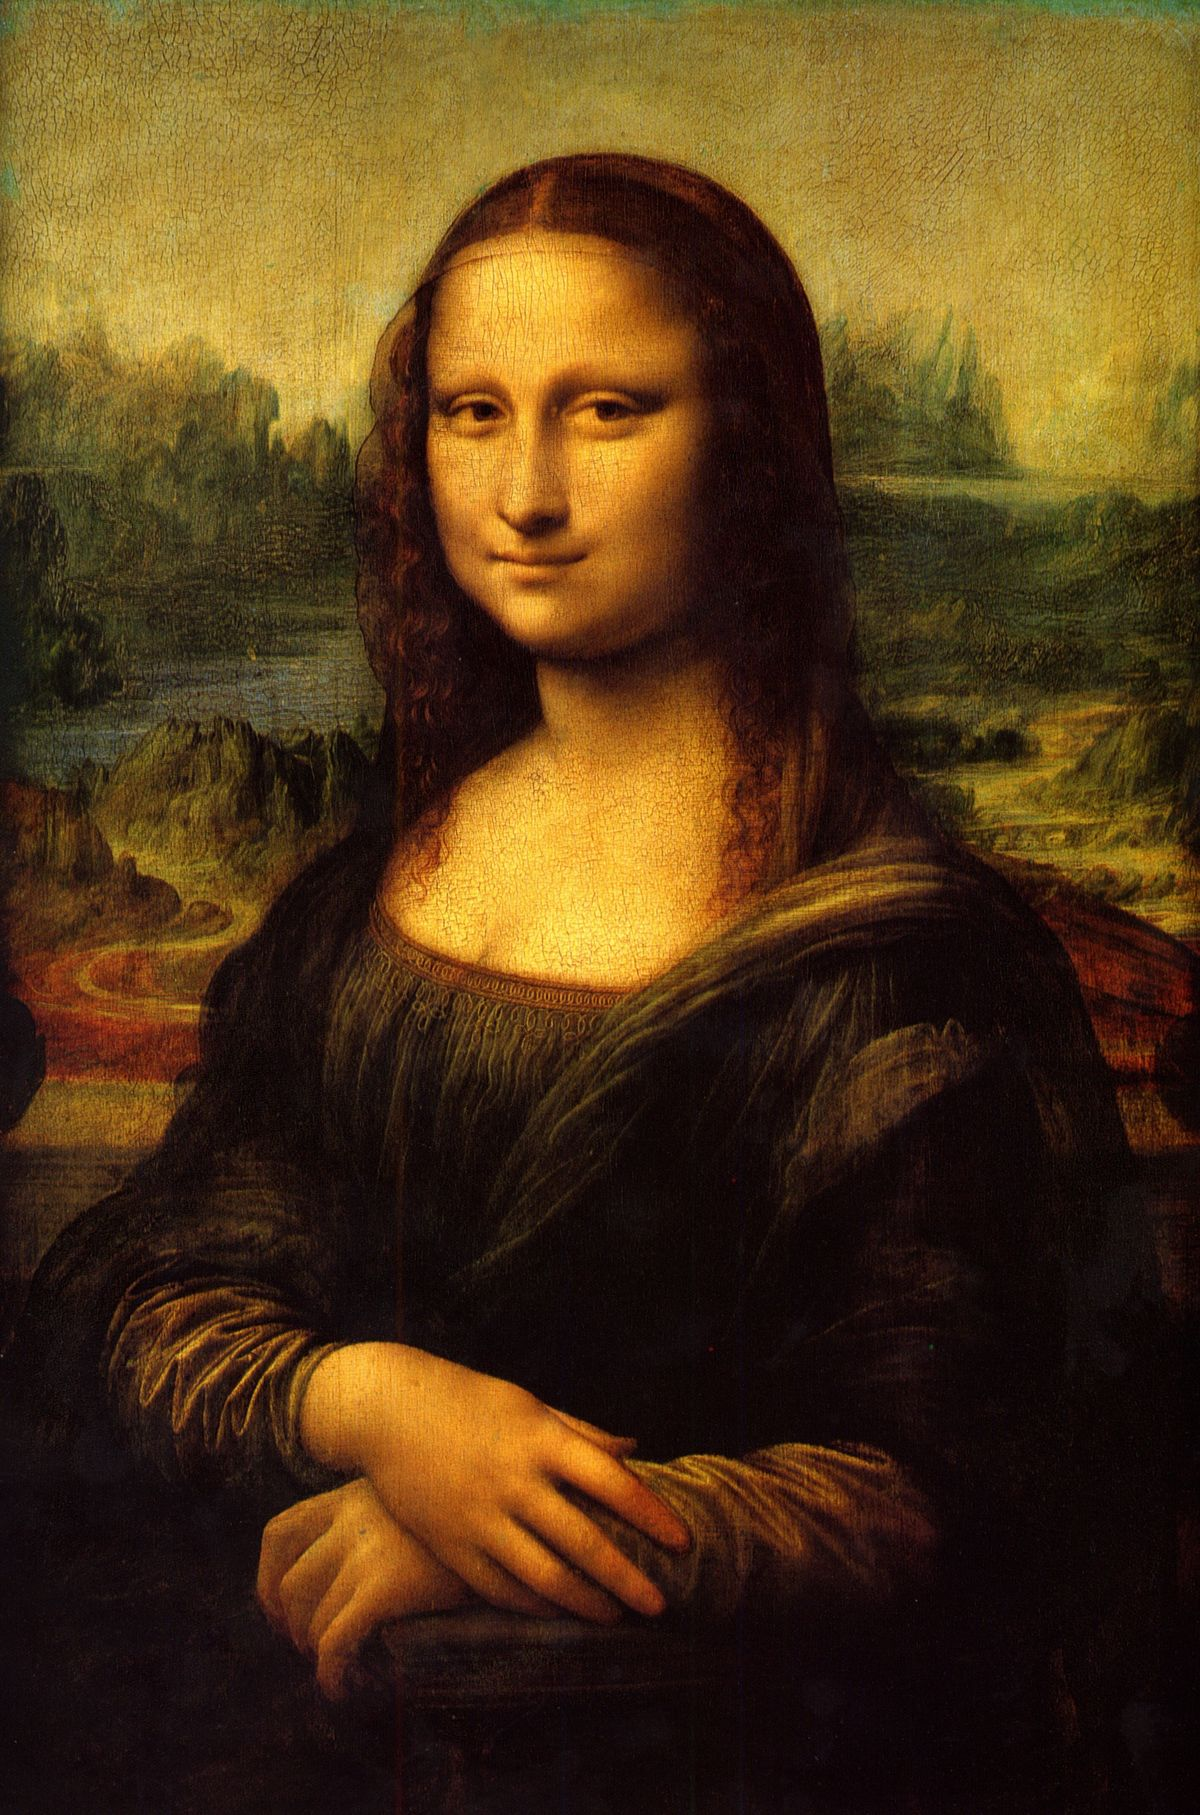 The Mona Lisa. ©RMN-Grand Palais (Musée du Louvre)/Michel Urlado